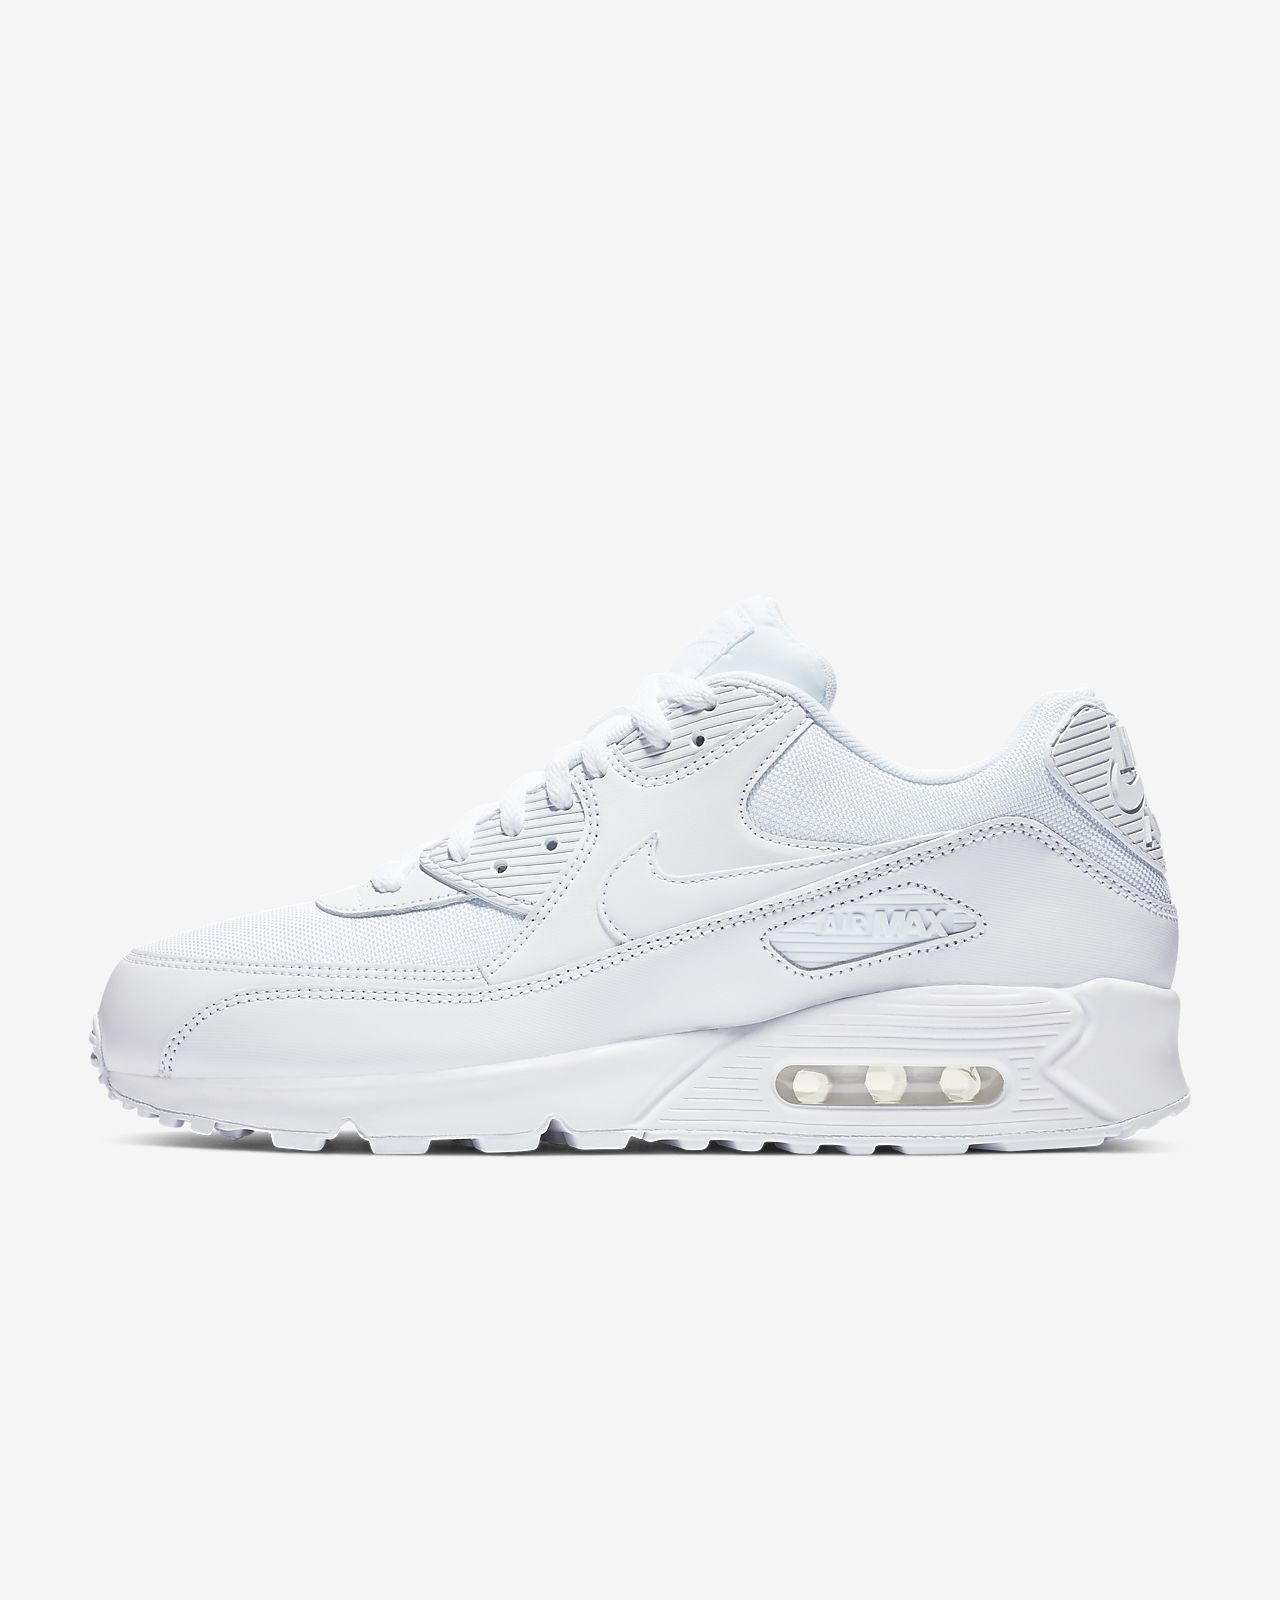 6d4278606797 Nike Air Max 90 Essential Men s Shoe. Nike.com NZ